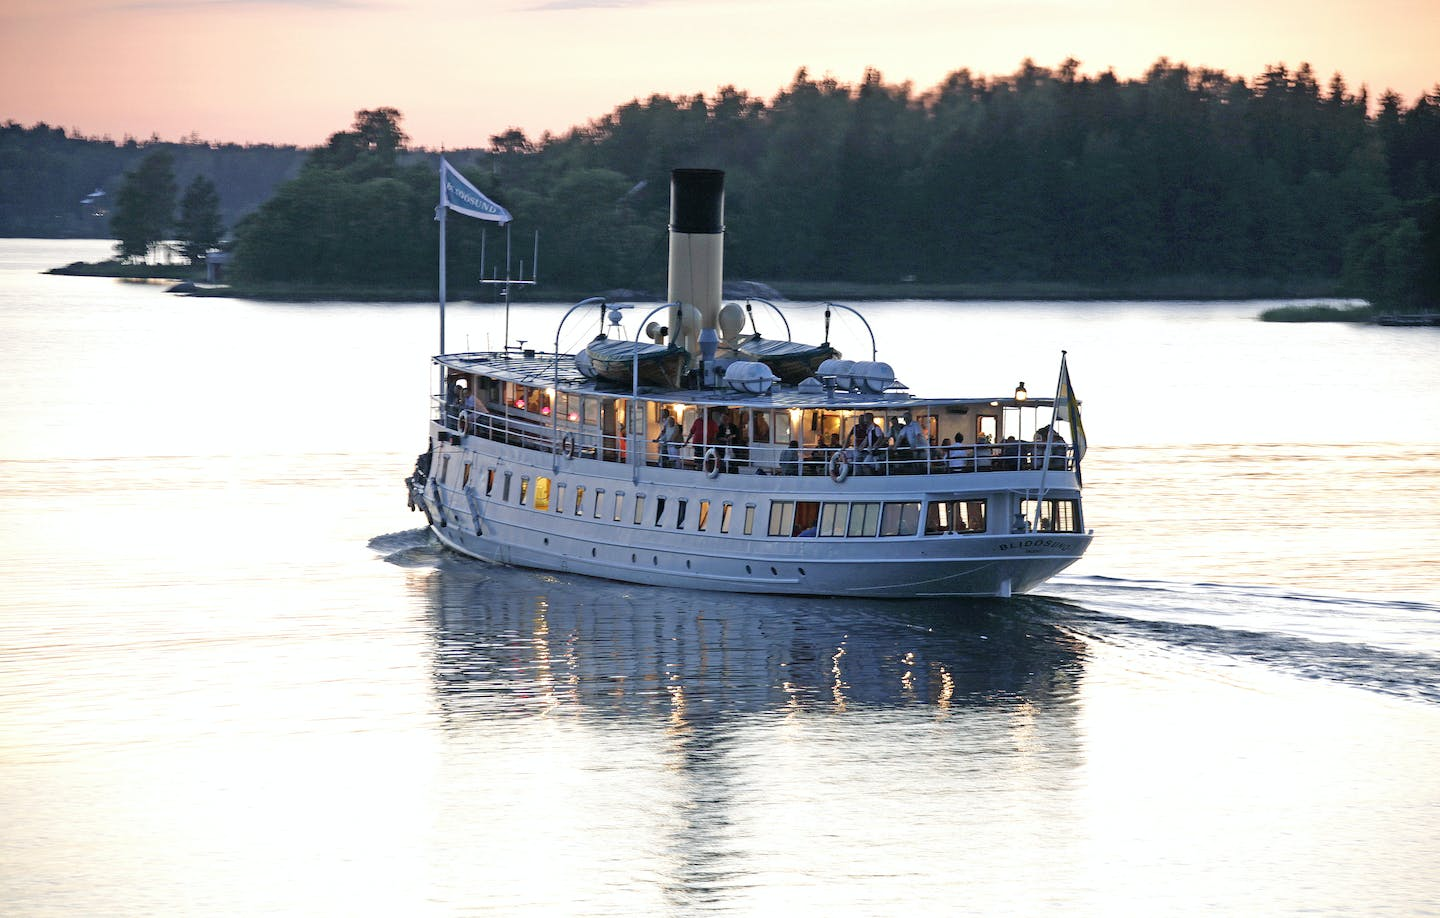 The music cruise ship s/s Blidösund in sunset